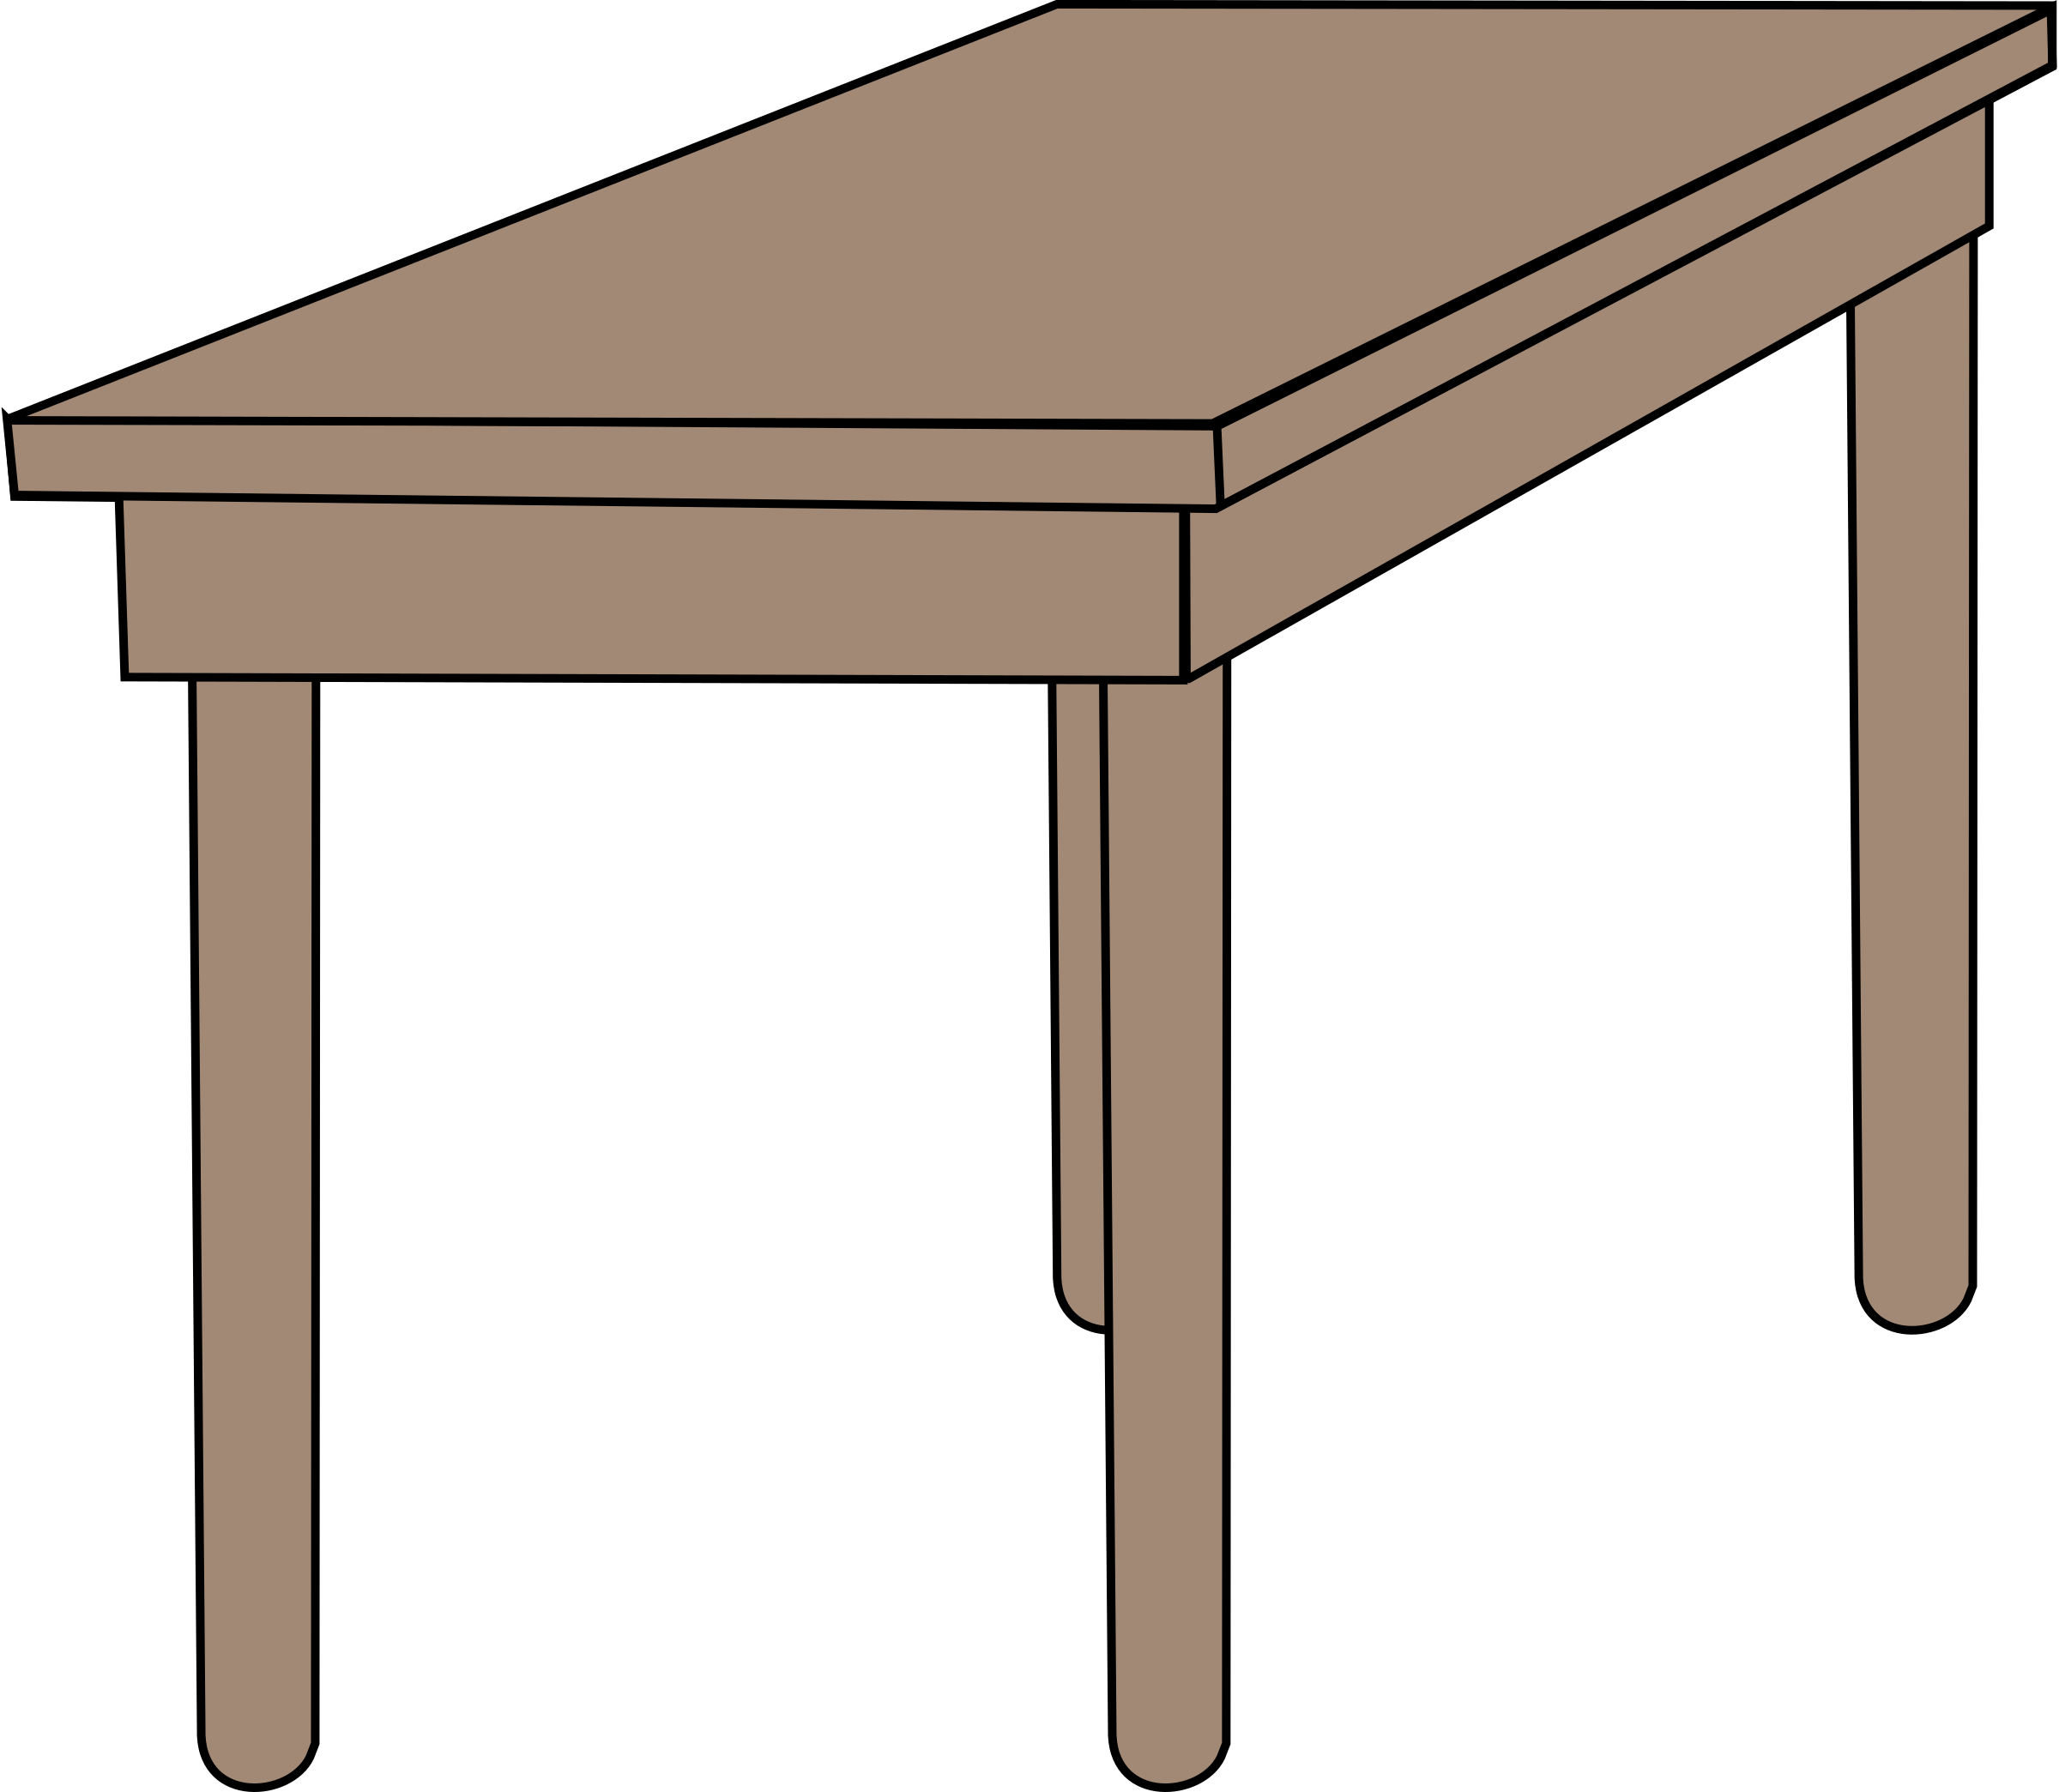 Cartoon Table Png, png collections at sccpre.cat.